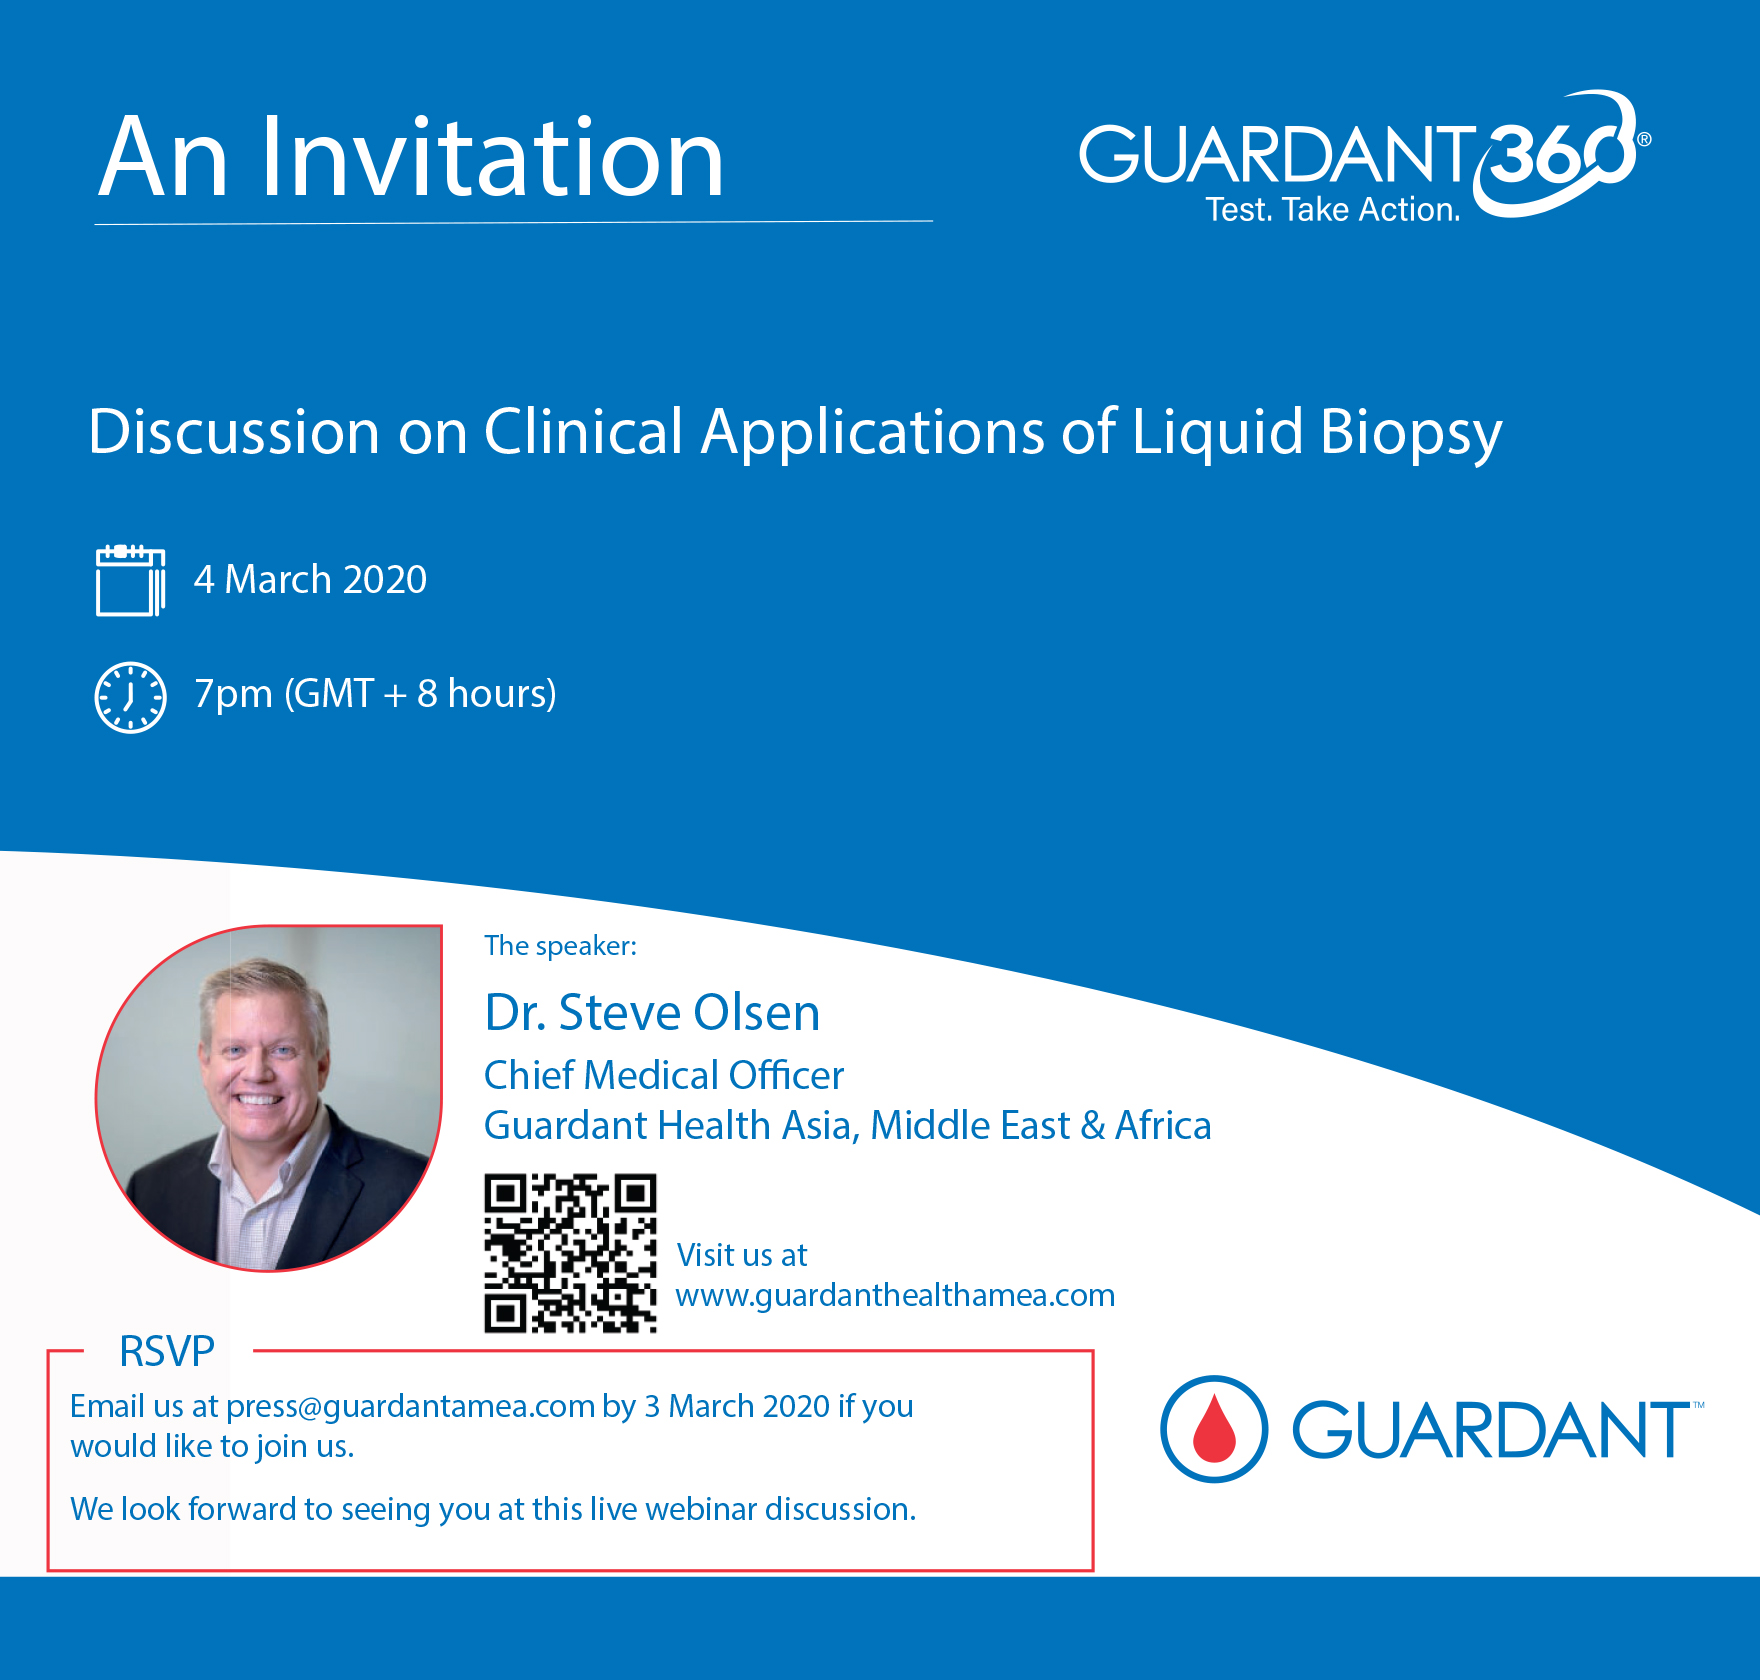 Discussion on Clinical Applications of Liquid Biopsy